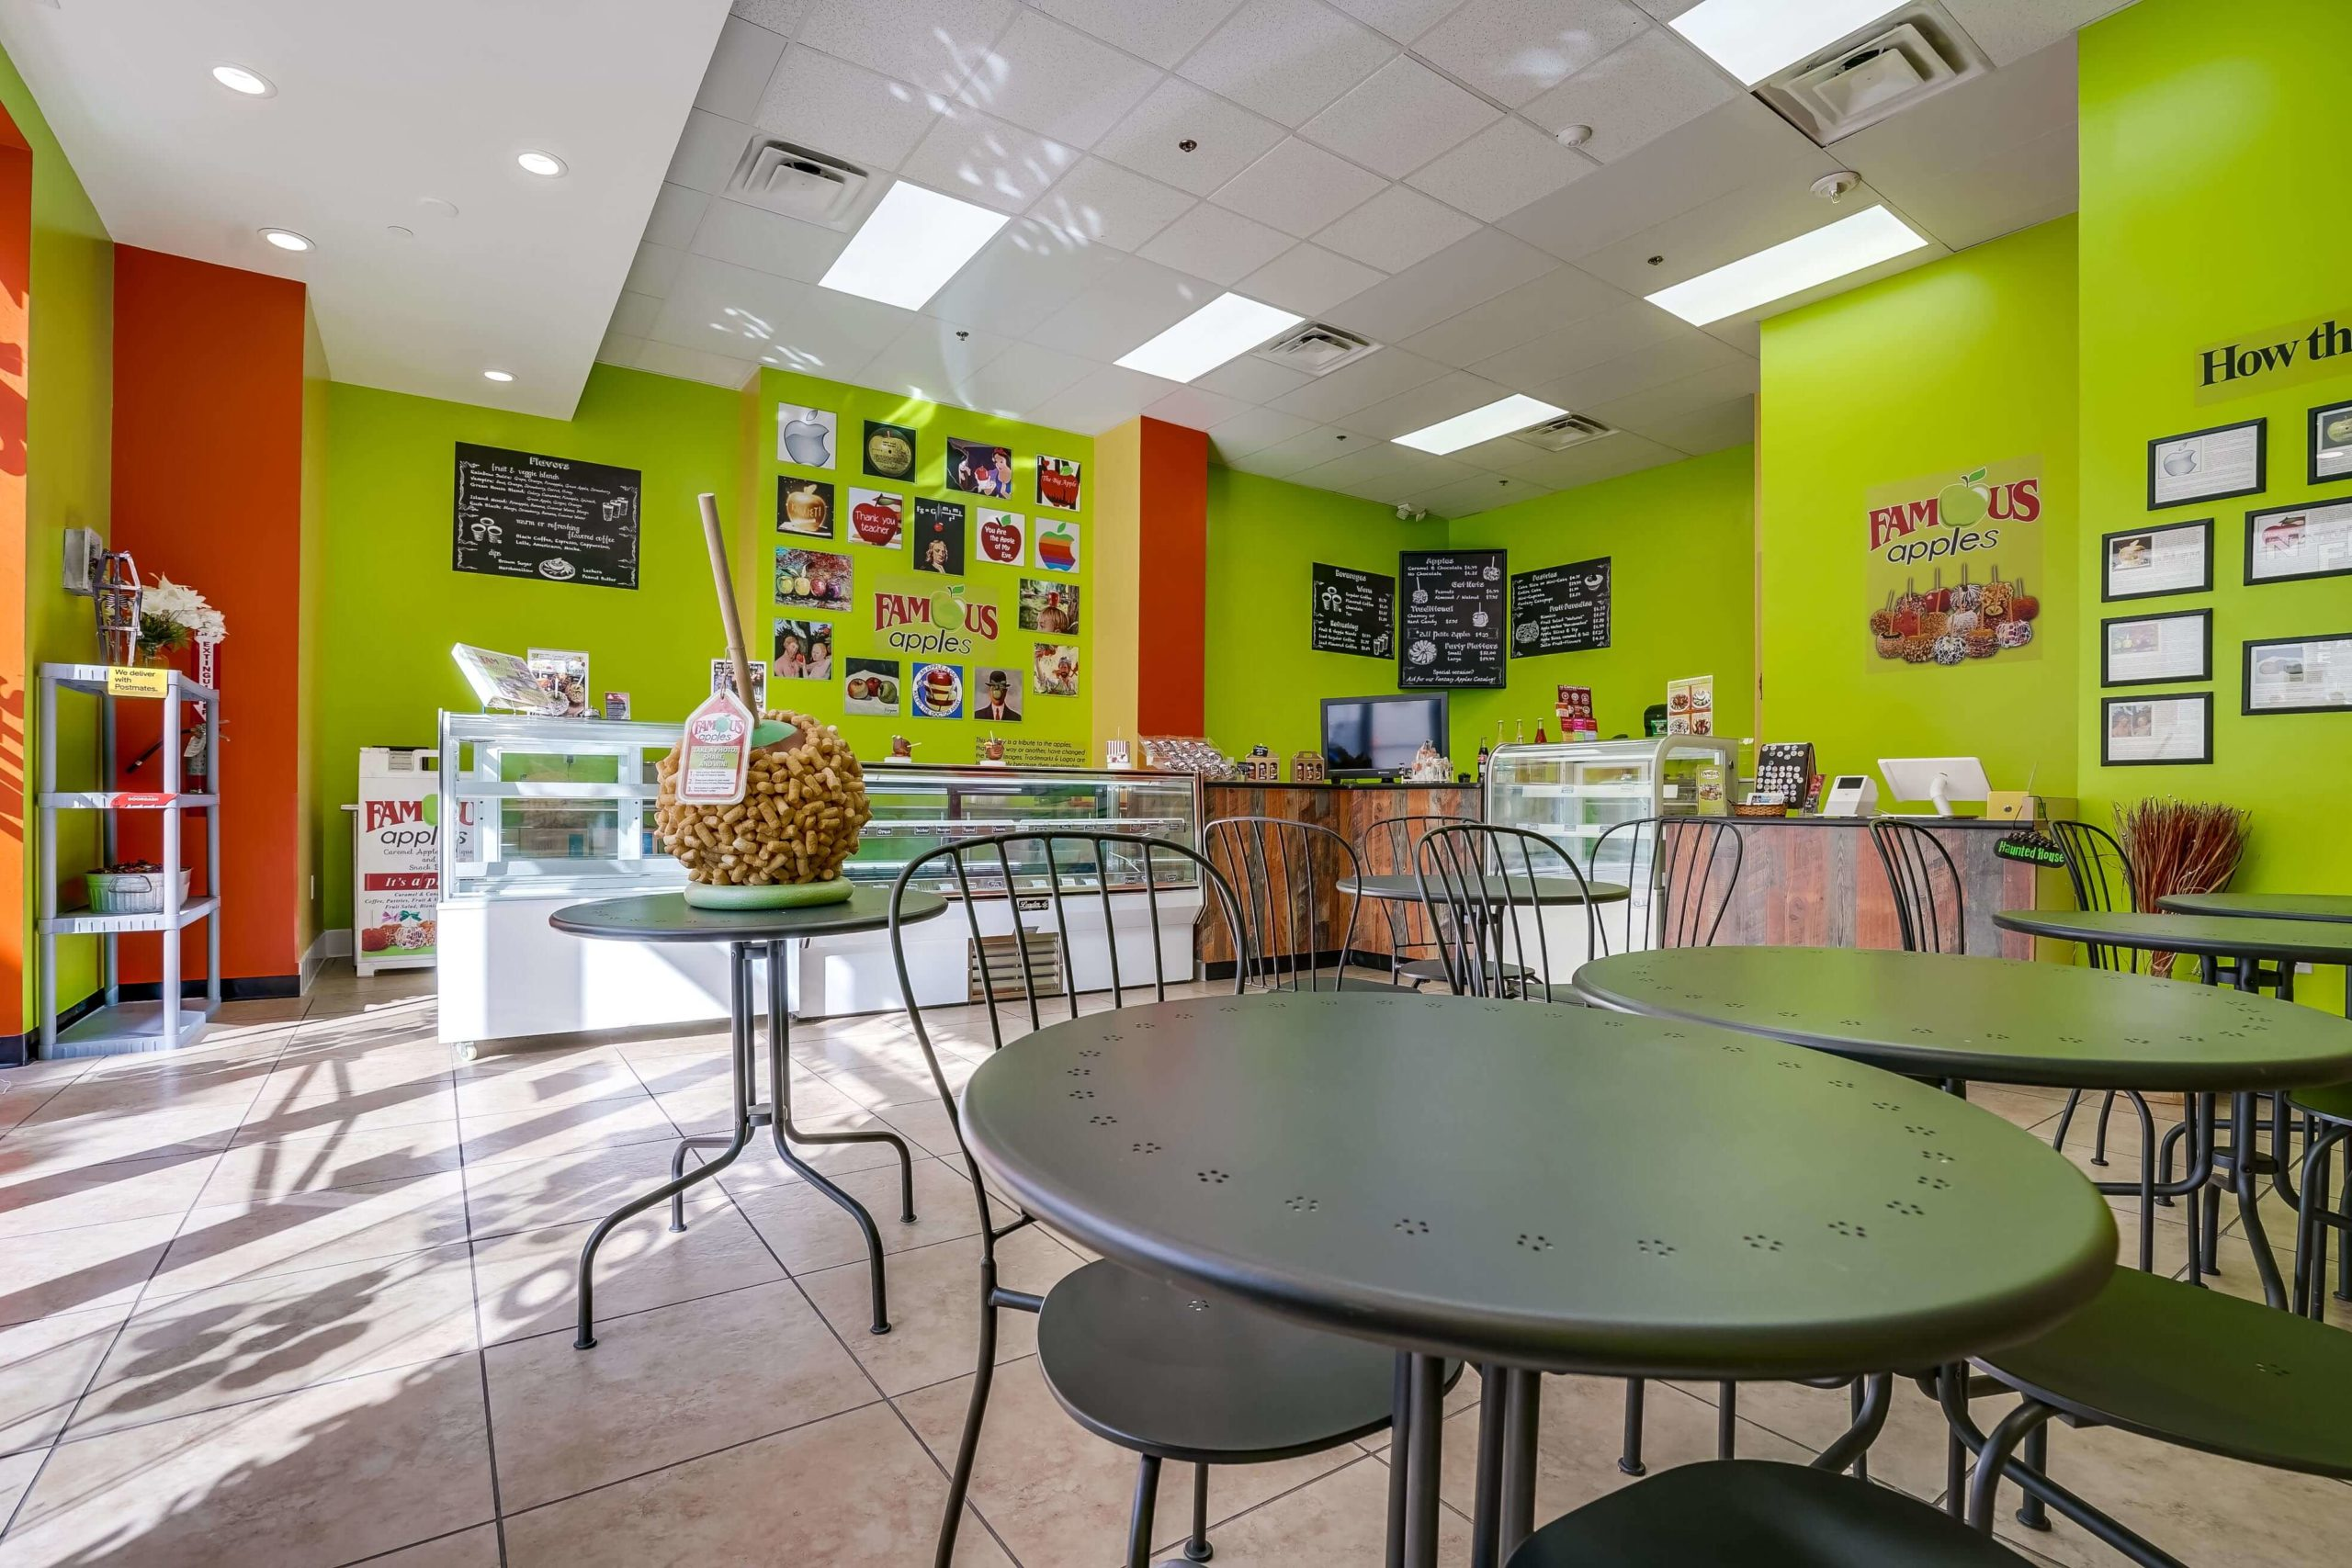 Famous Apples - Candy Apple colored interior